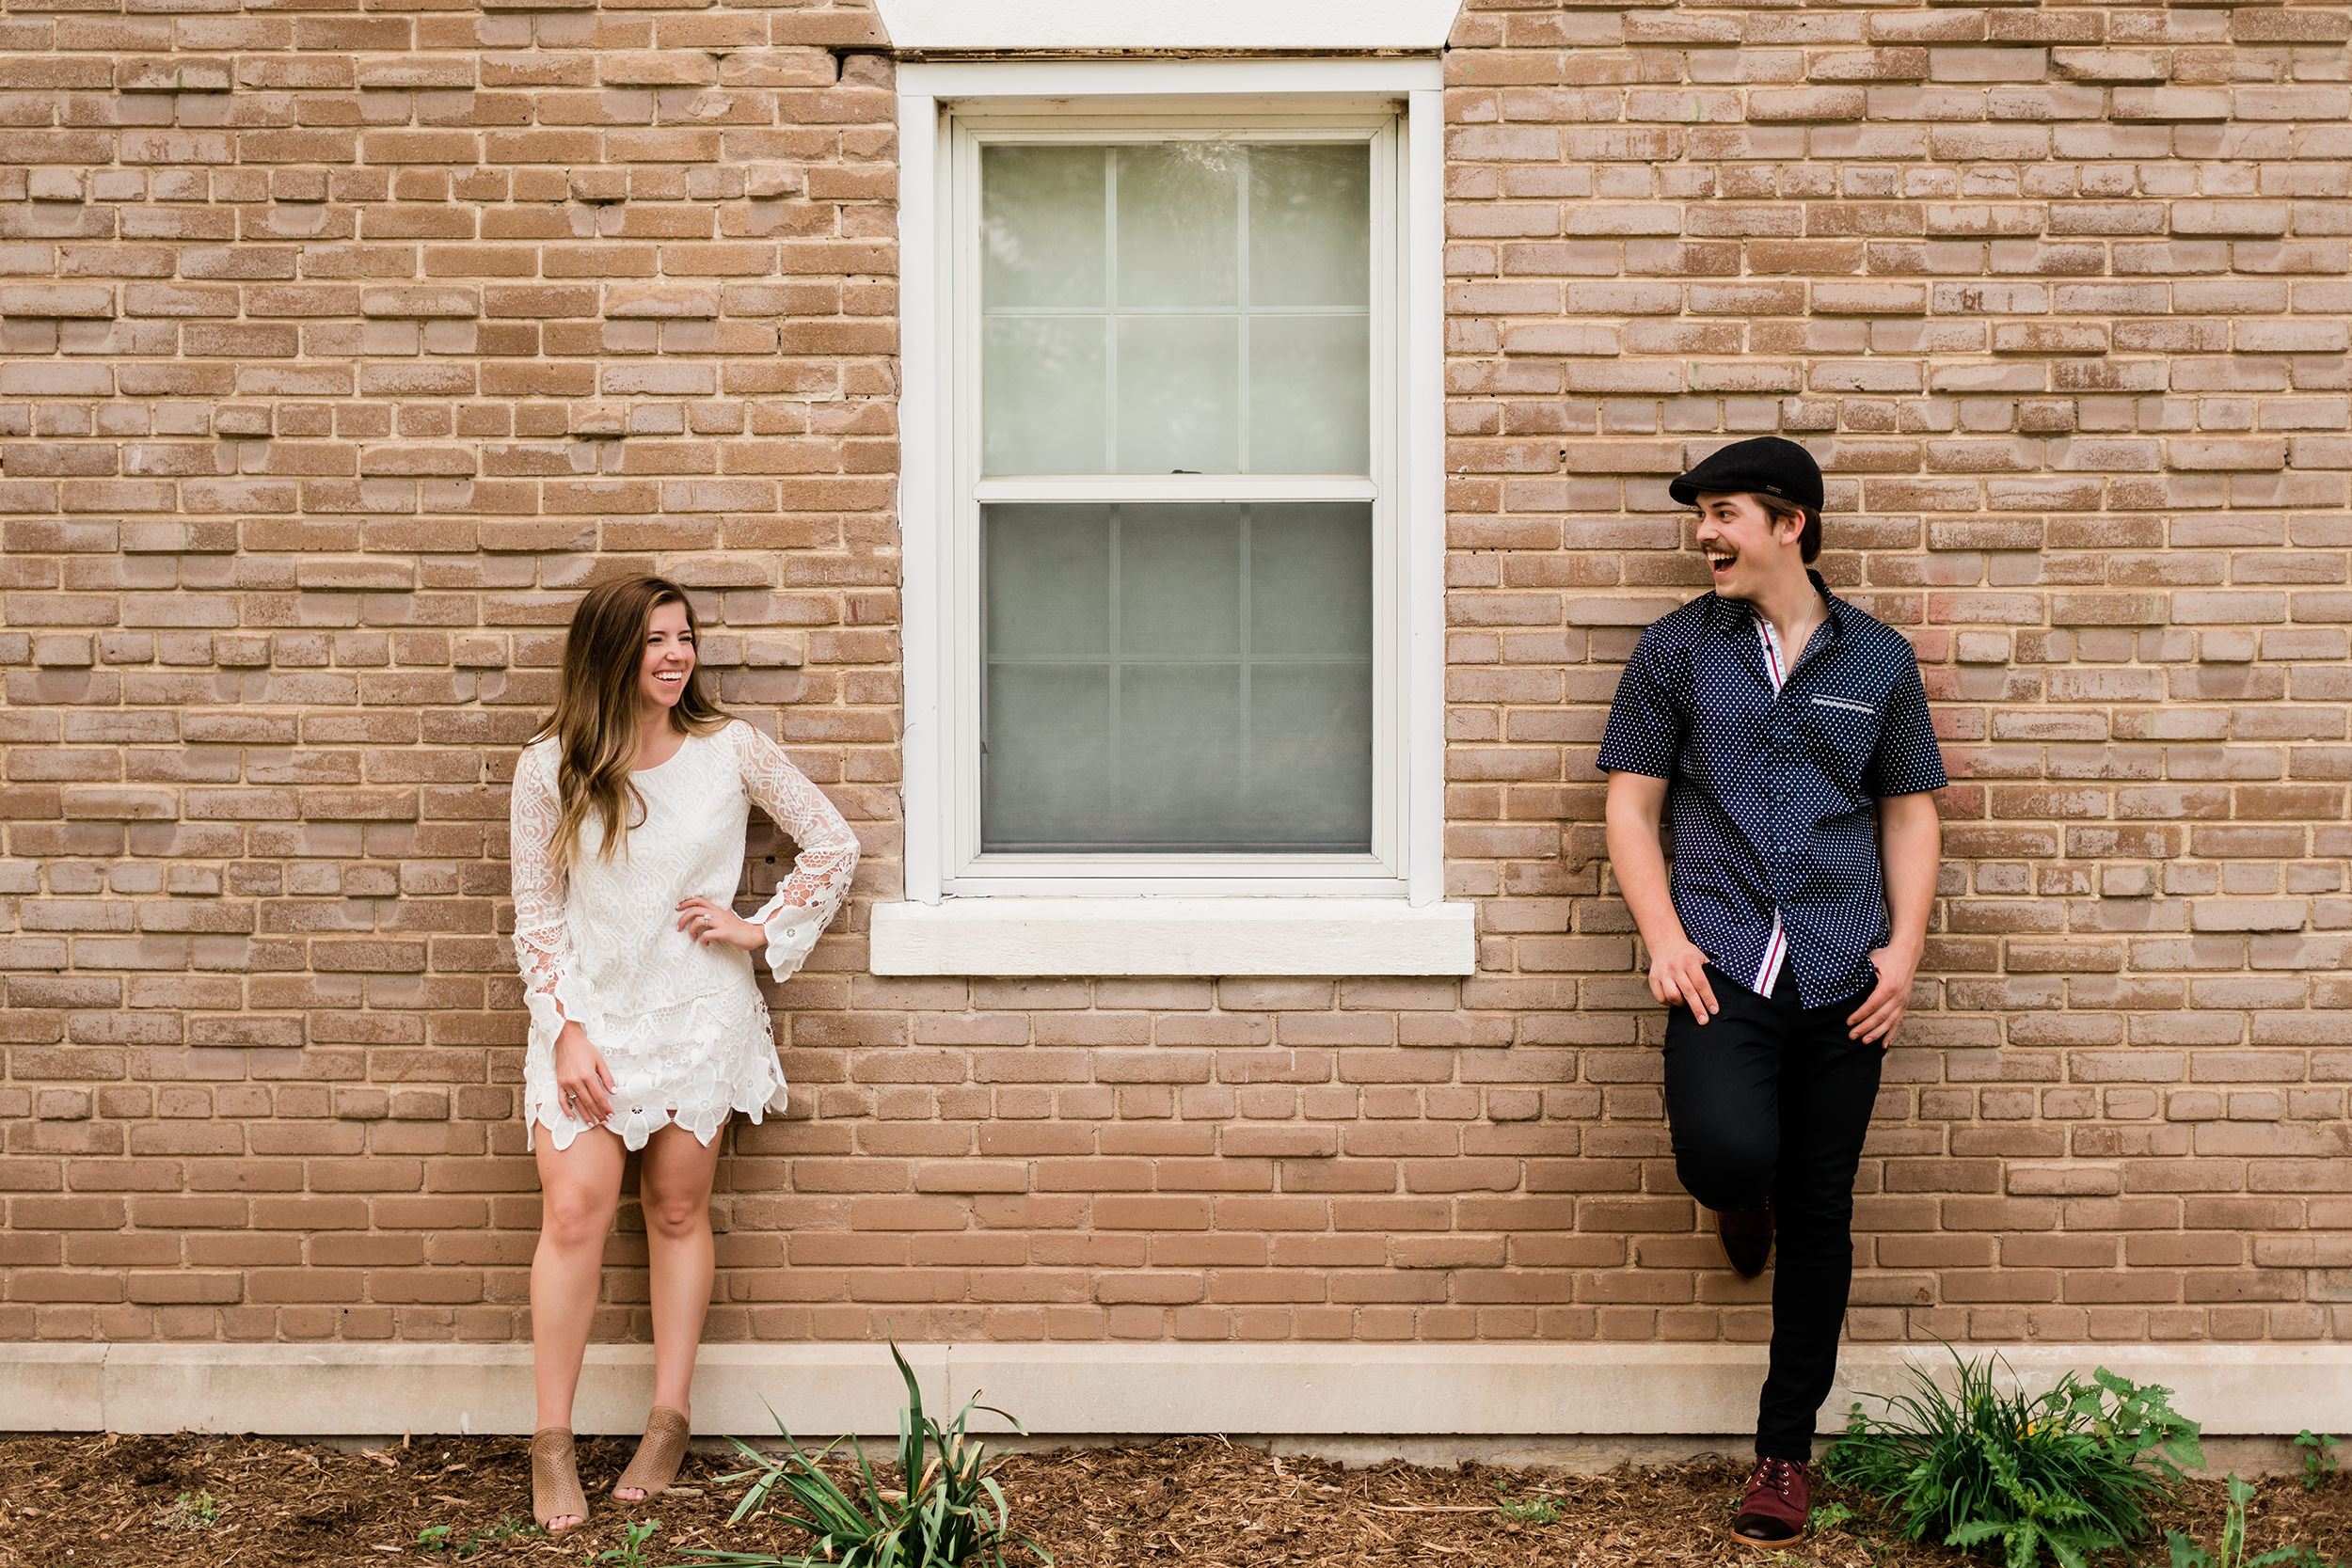 Engaged couple leaning up against a brick building and looking at each other